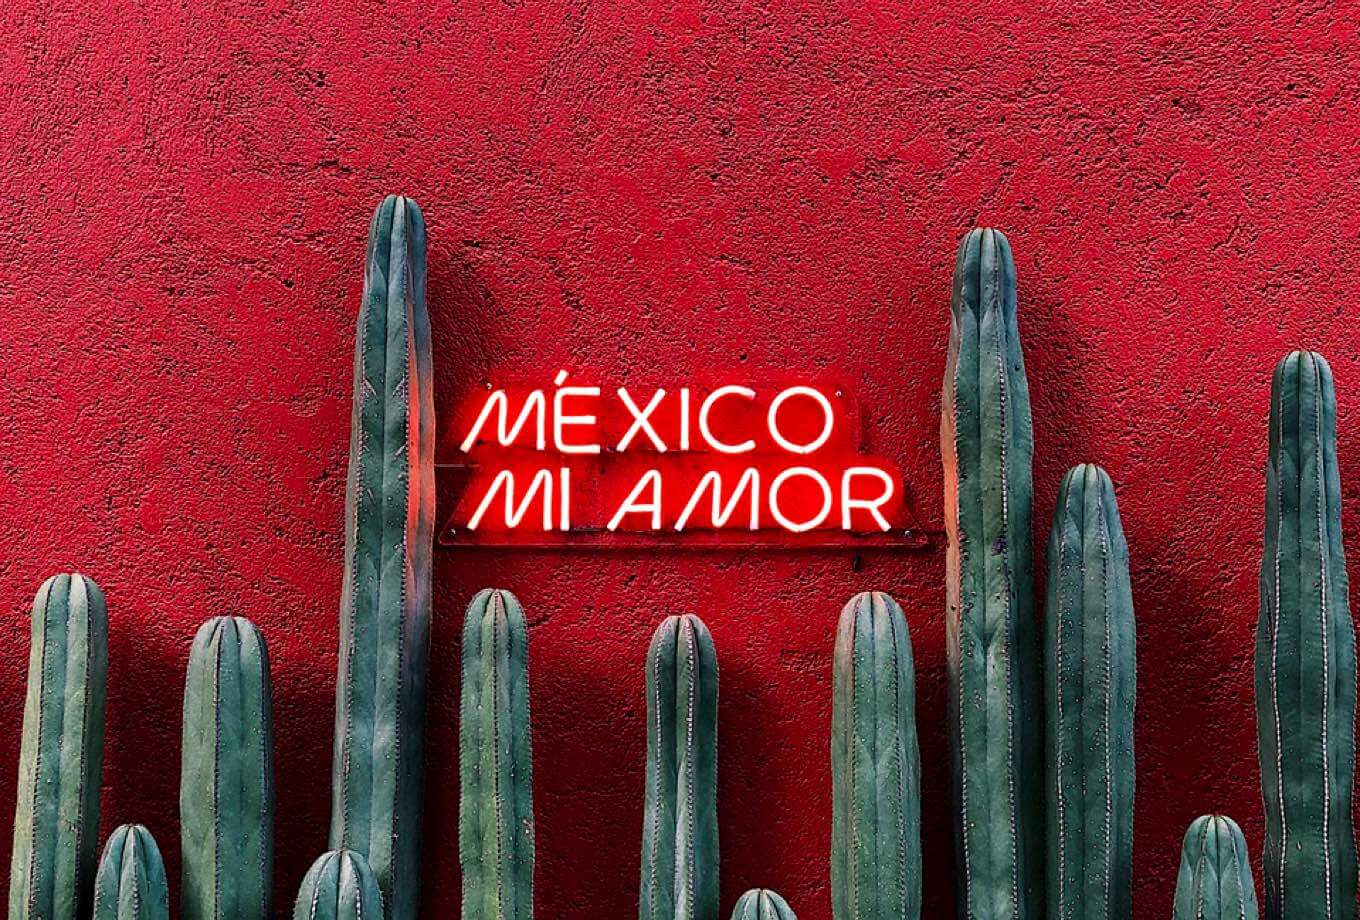 a neon sign saying 'Mia amore, Mexico!' on a print pink wall